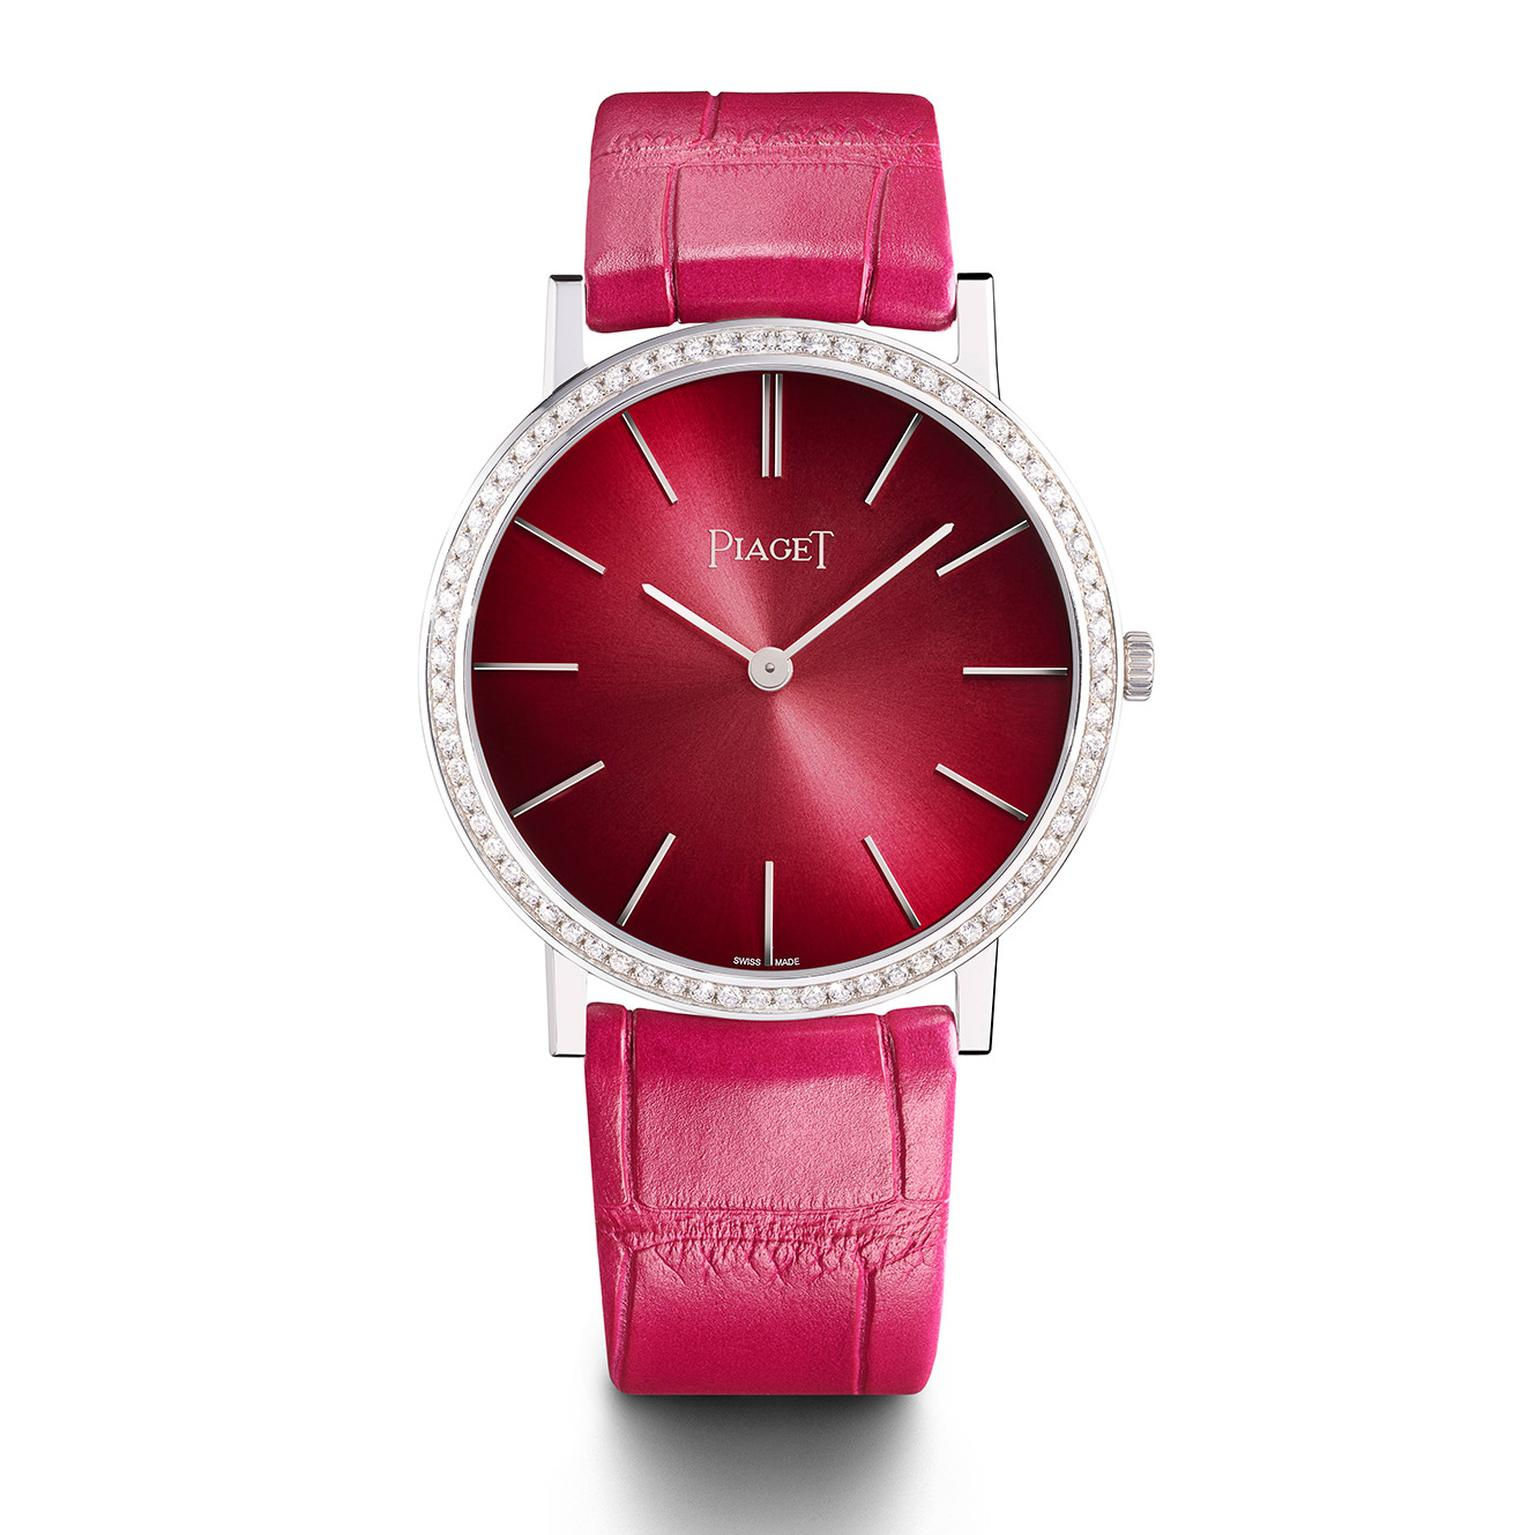 Piaget Classic ultra-thin Altiplano watch